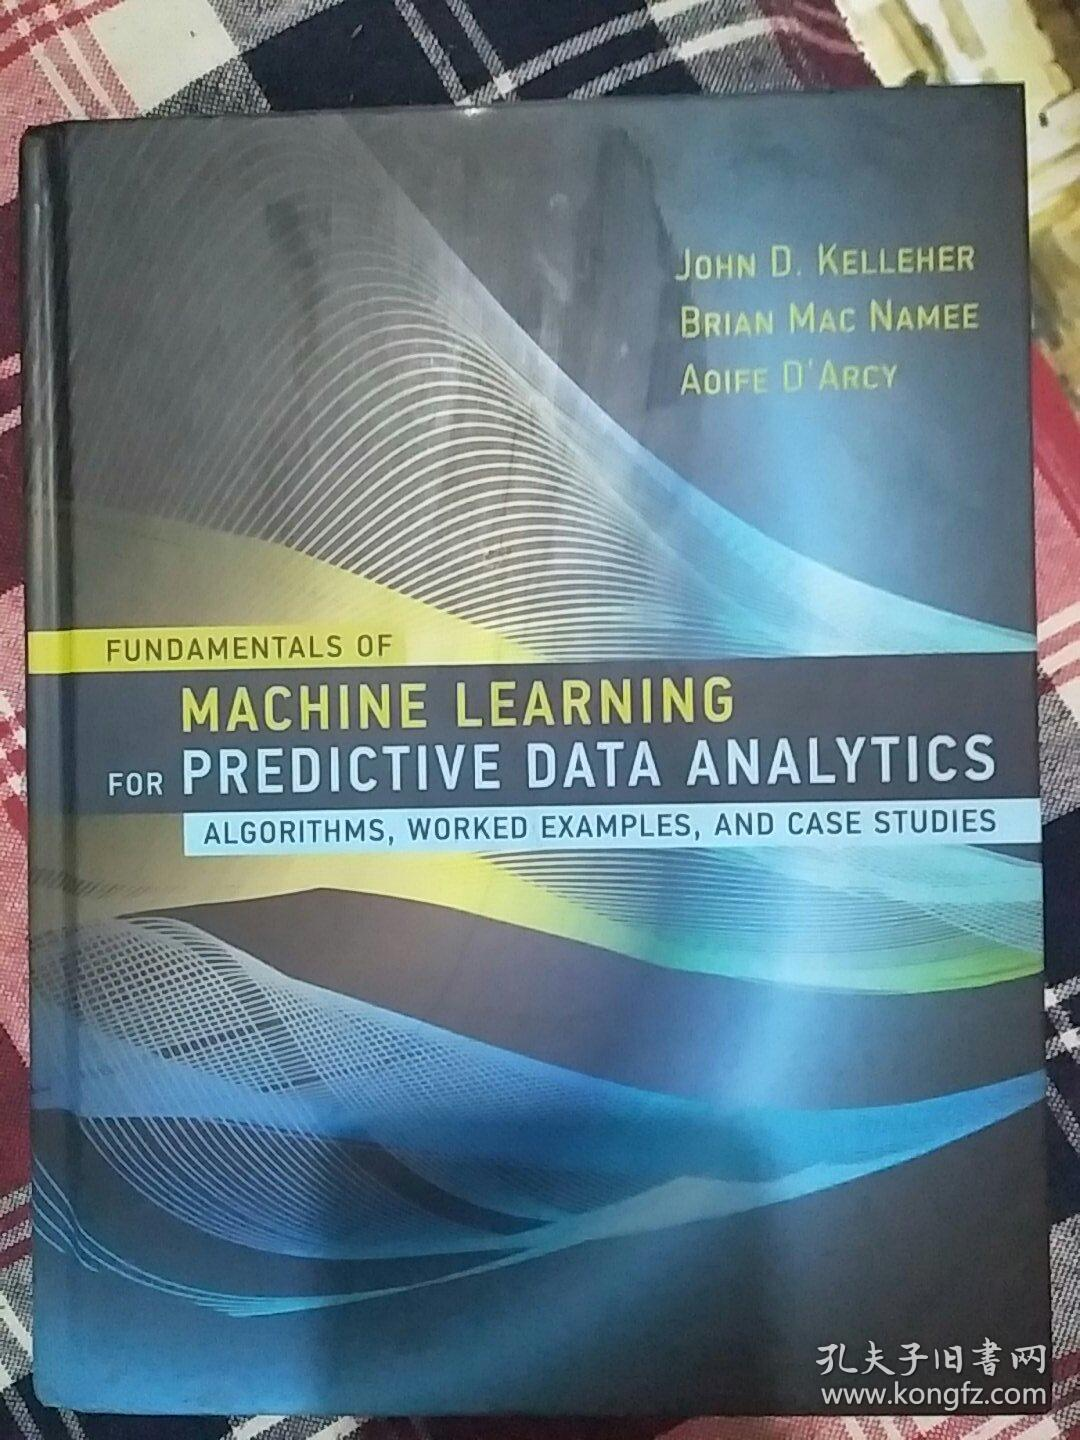 Fundamentals of Machine Learning for Predictive Data Analytics:Algorithms, Worked Examples, and Case Studies